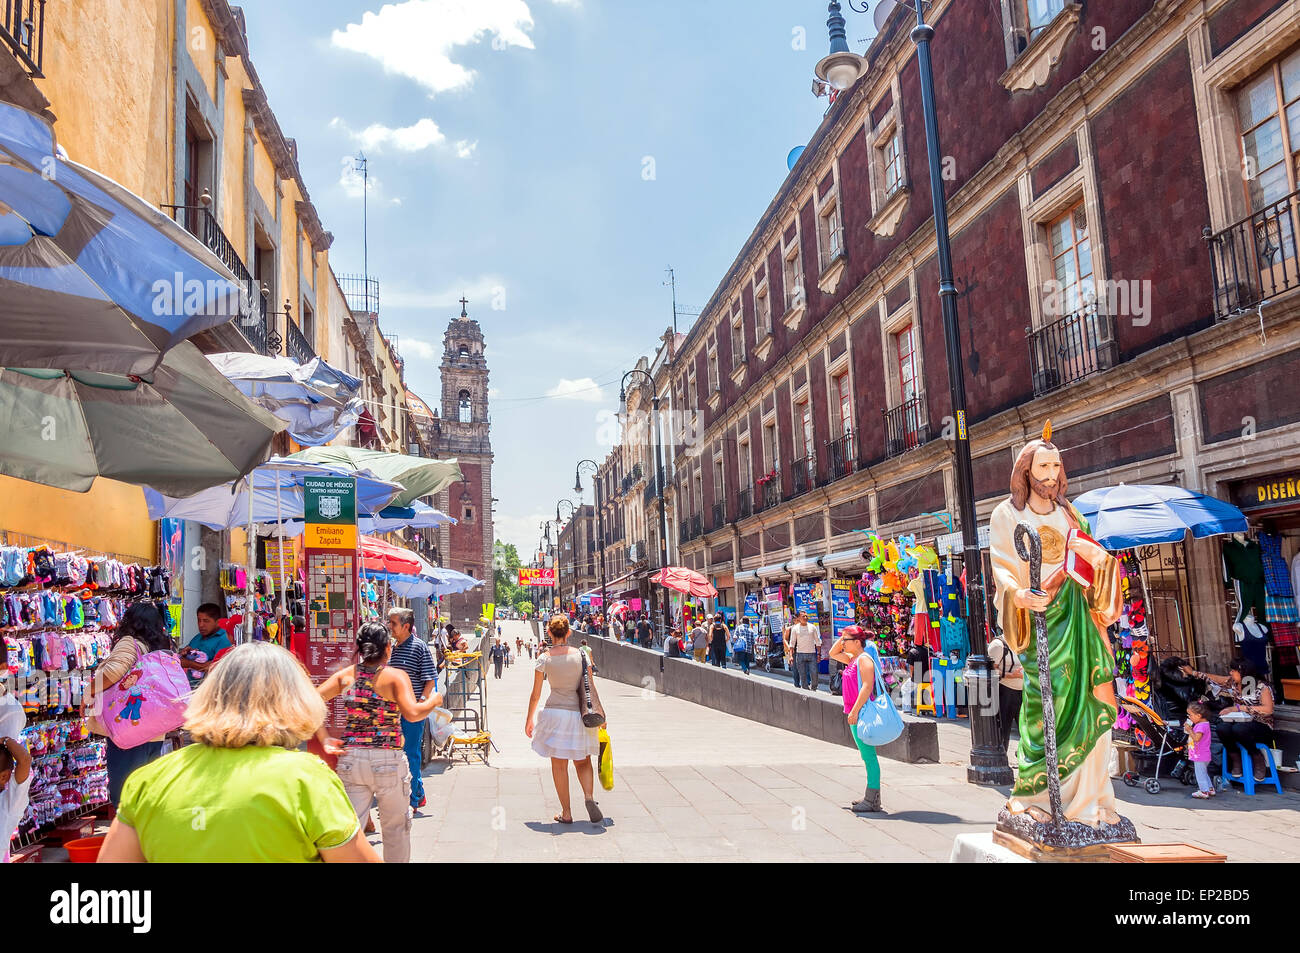 MEXICO CITY, MEXICO - APRIL 29, 2014: locals and tourists in Zocalo downtown streets in Mexico City, Mexico. - Stock Image